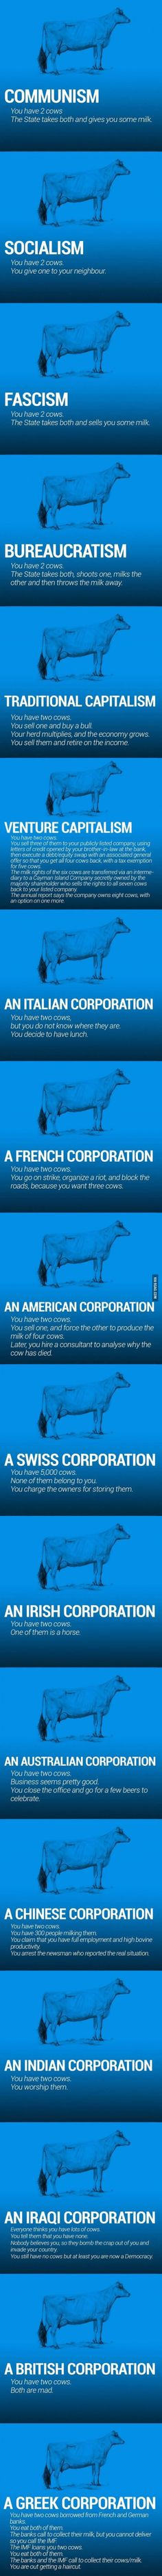 The World Economy Explained With Two Cows